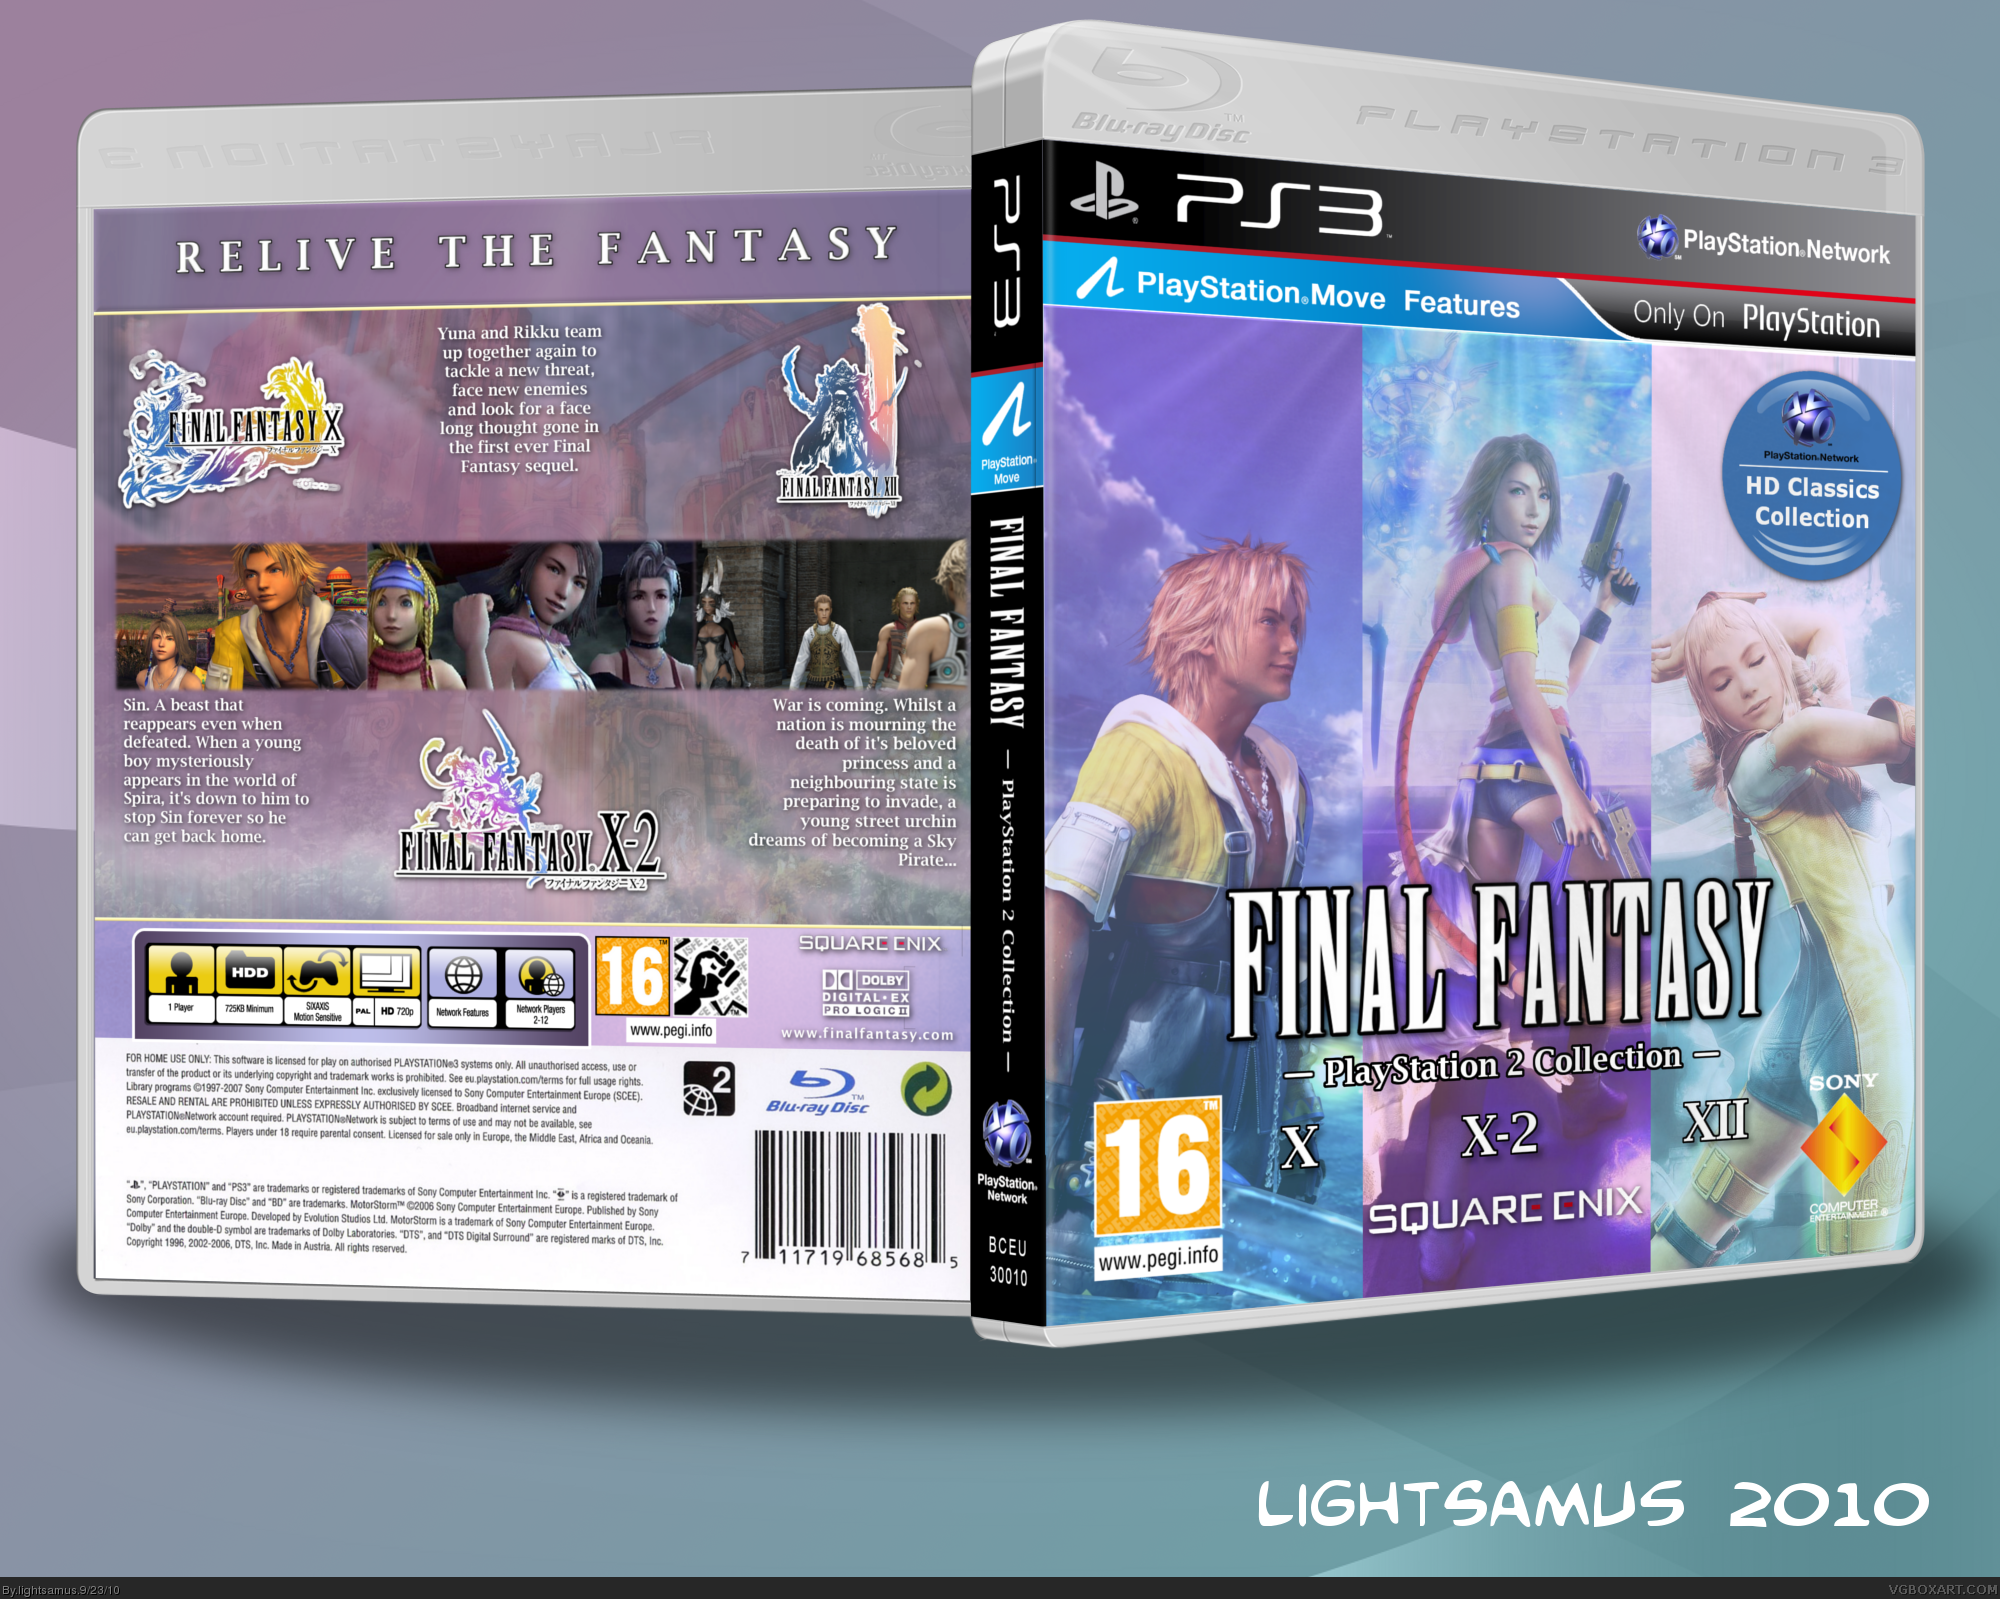 Final Fantasy - PlayStation 2 Collection box cover